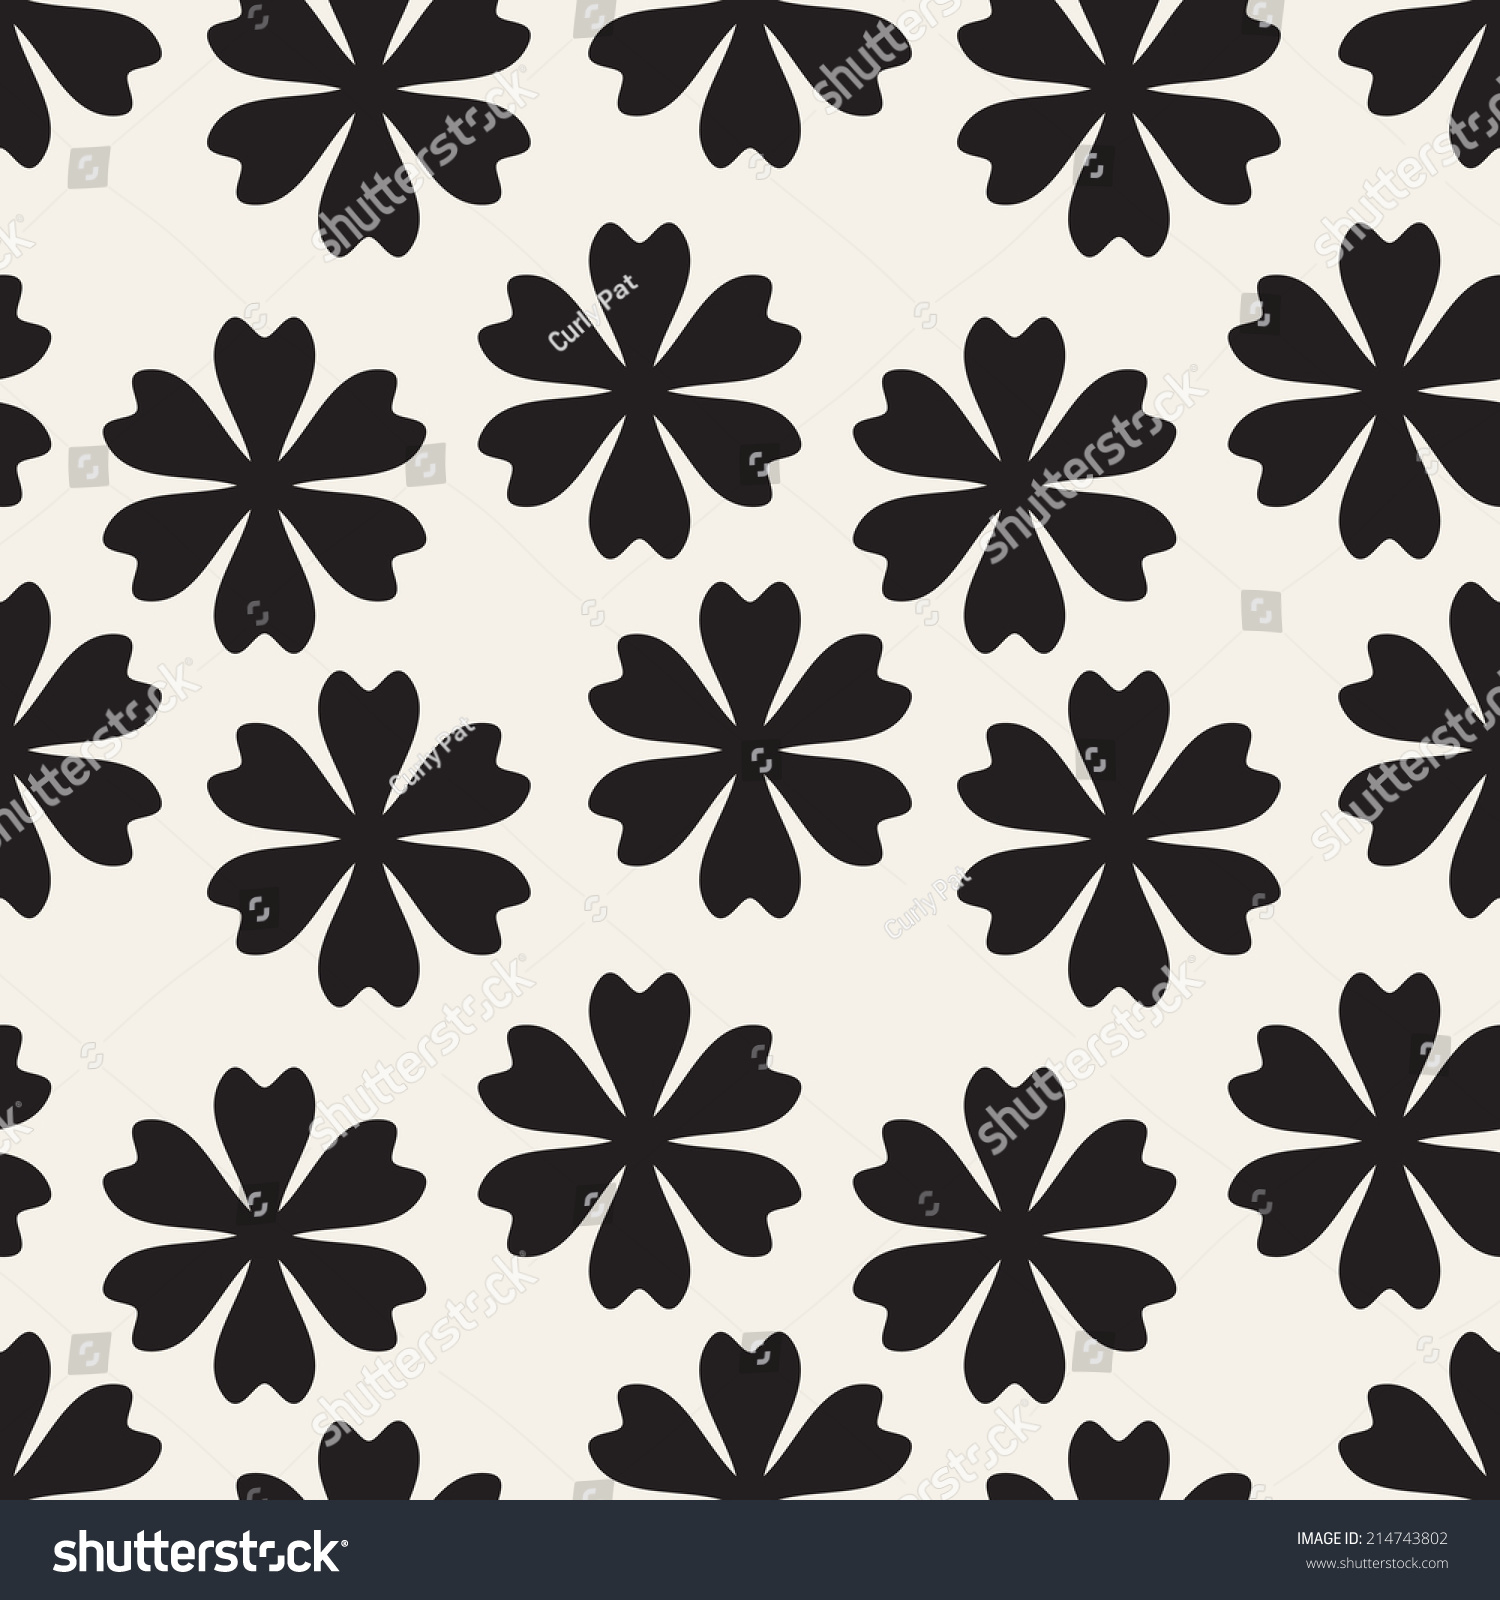 Vector Seamless Pattern Flowers Abstract Floral Stock Vector ...